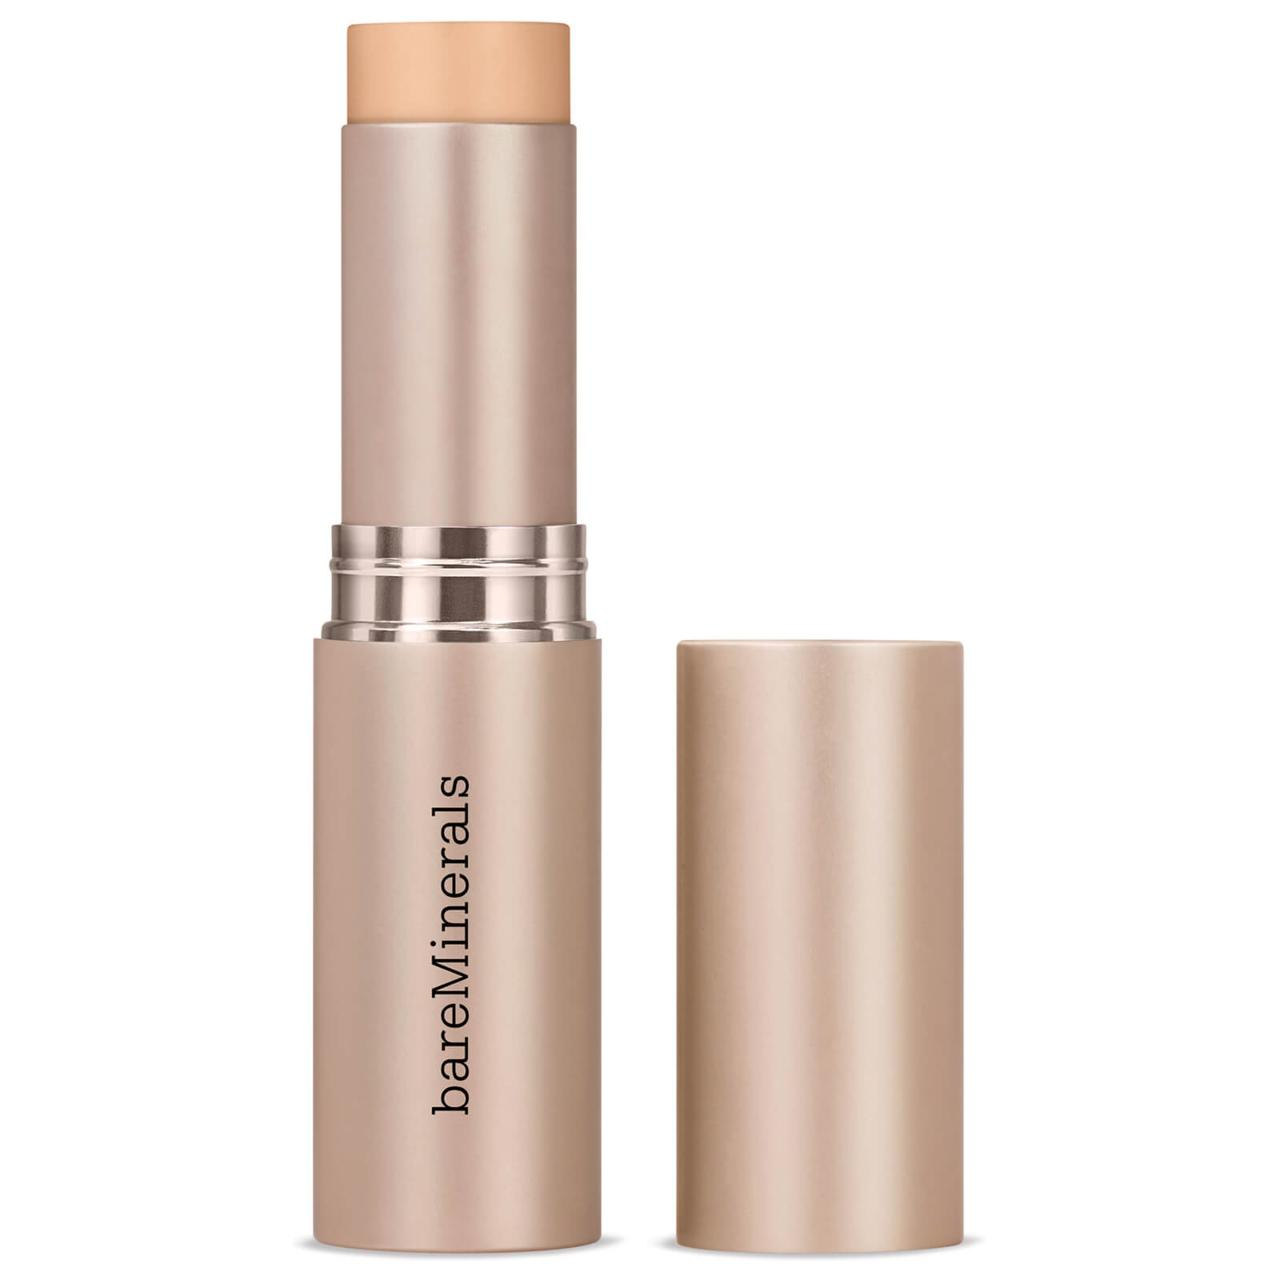 Bare Minerals Complexion Rescue Hydrating Foundation Stick SPF 25.